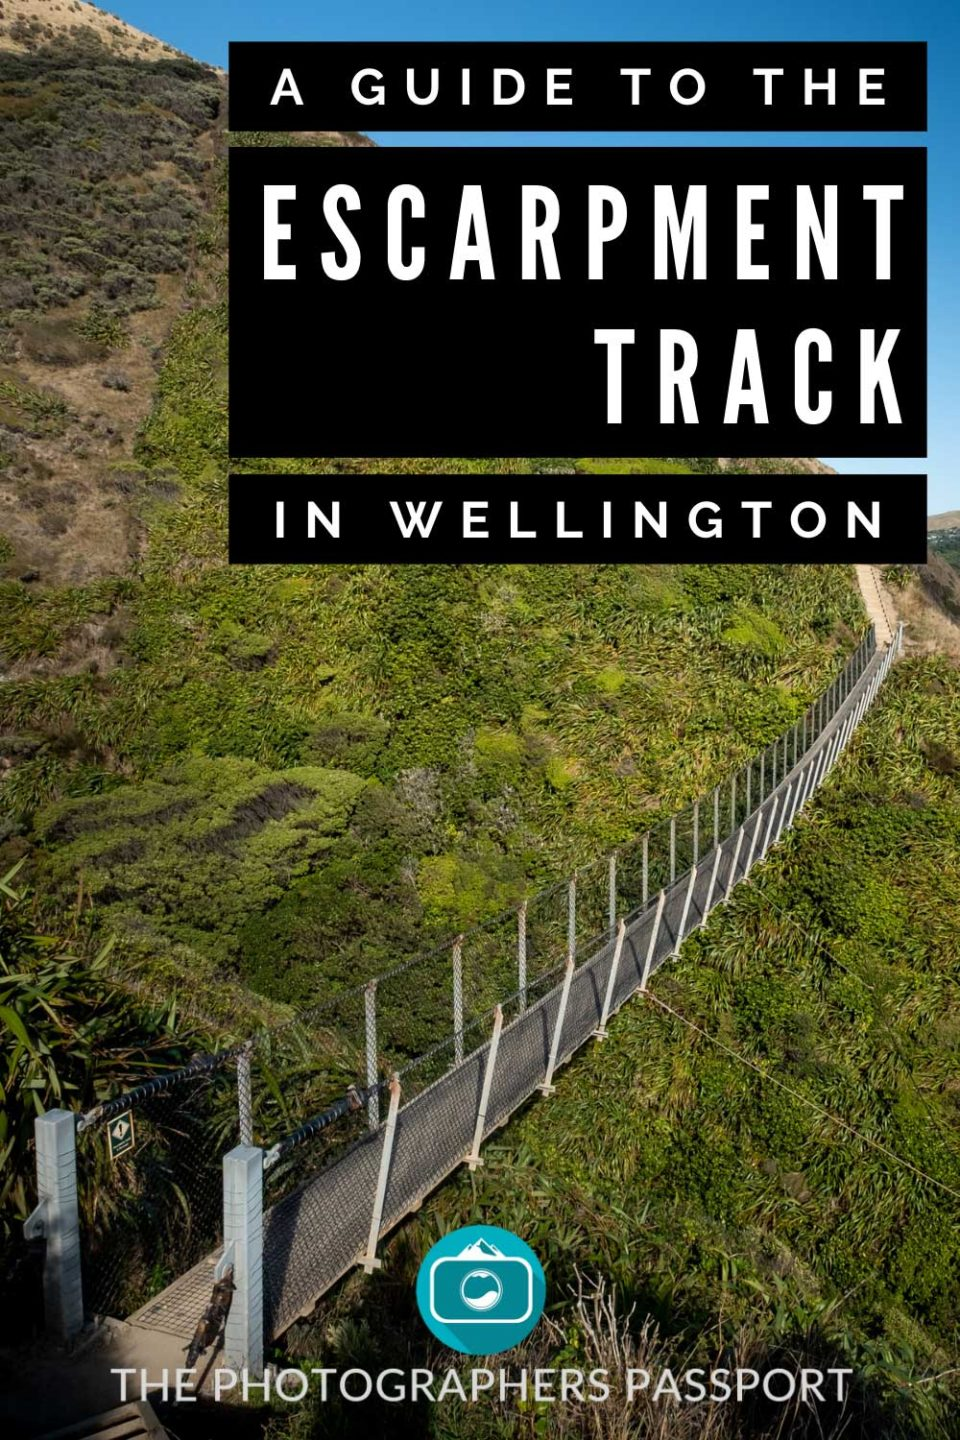 The Paekakariki Escarpment track is an amazing walking trail located in Wellington. On this walk you will be treated to spectacular views of the Kāpiti coastline as well as Kāpiti island. Click here to learn more about this incredible place.